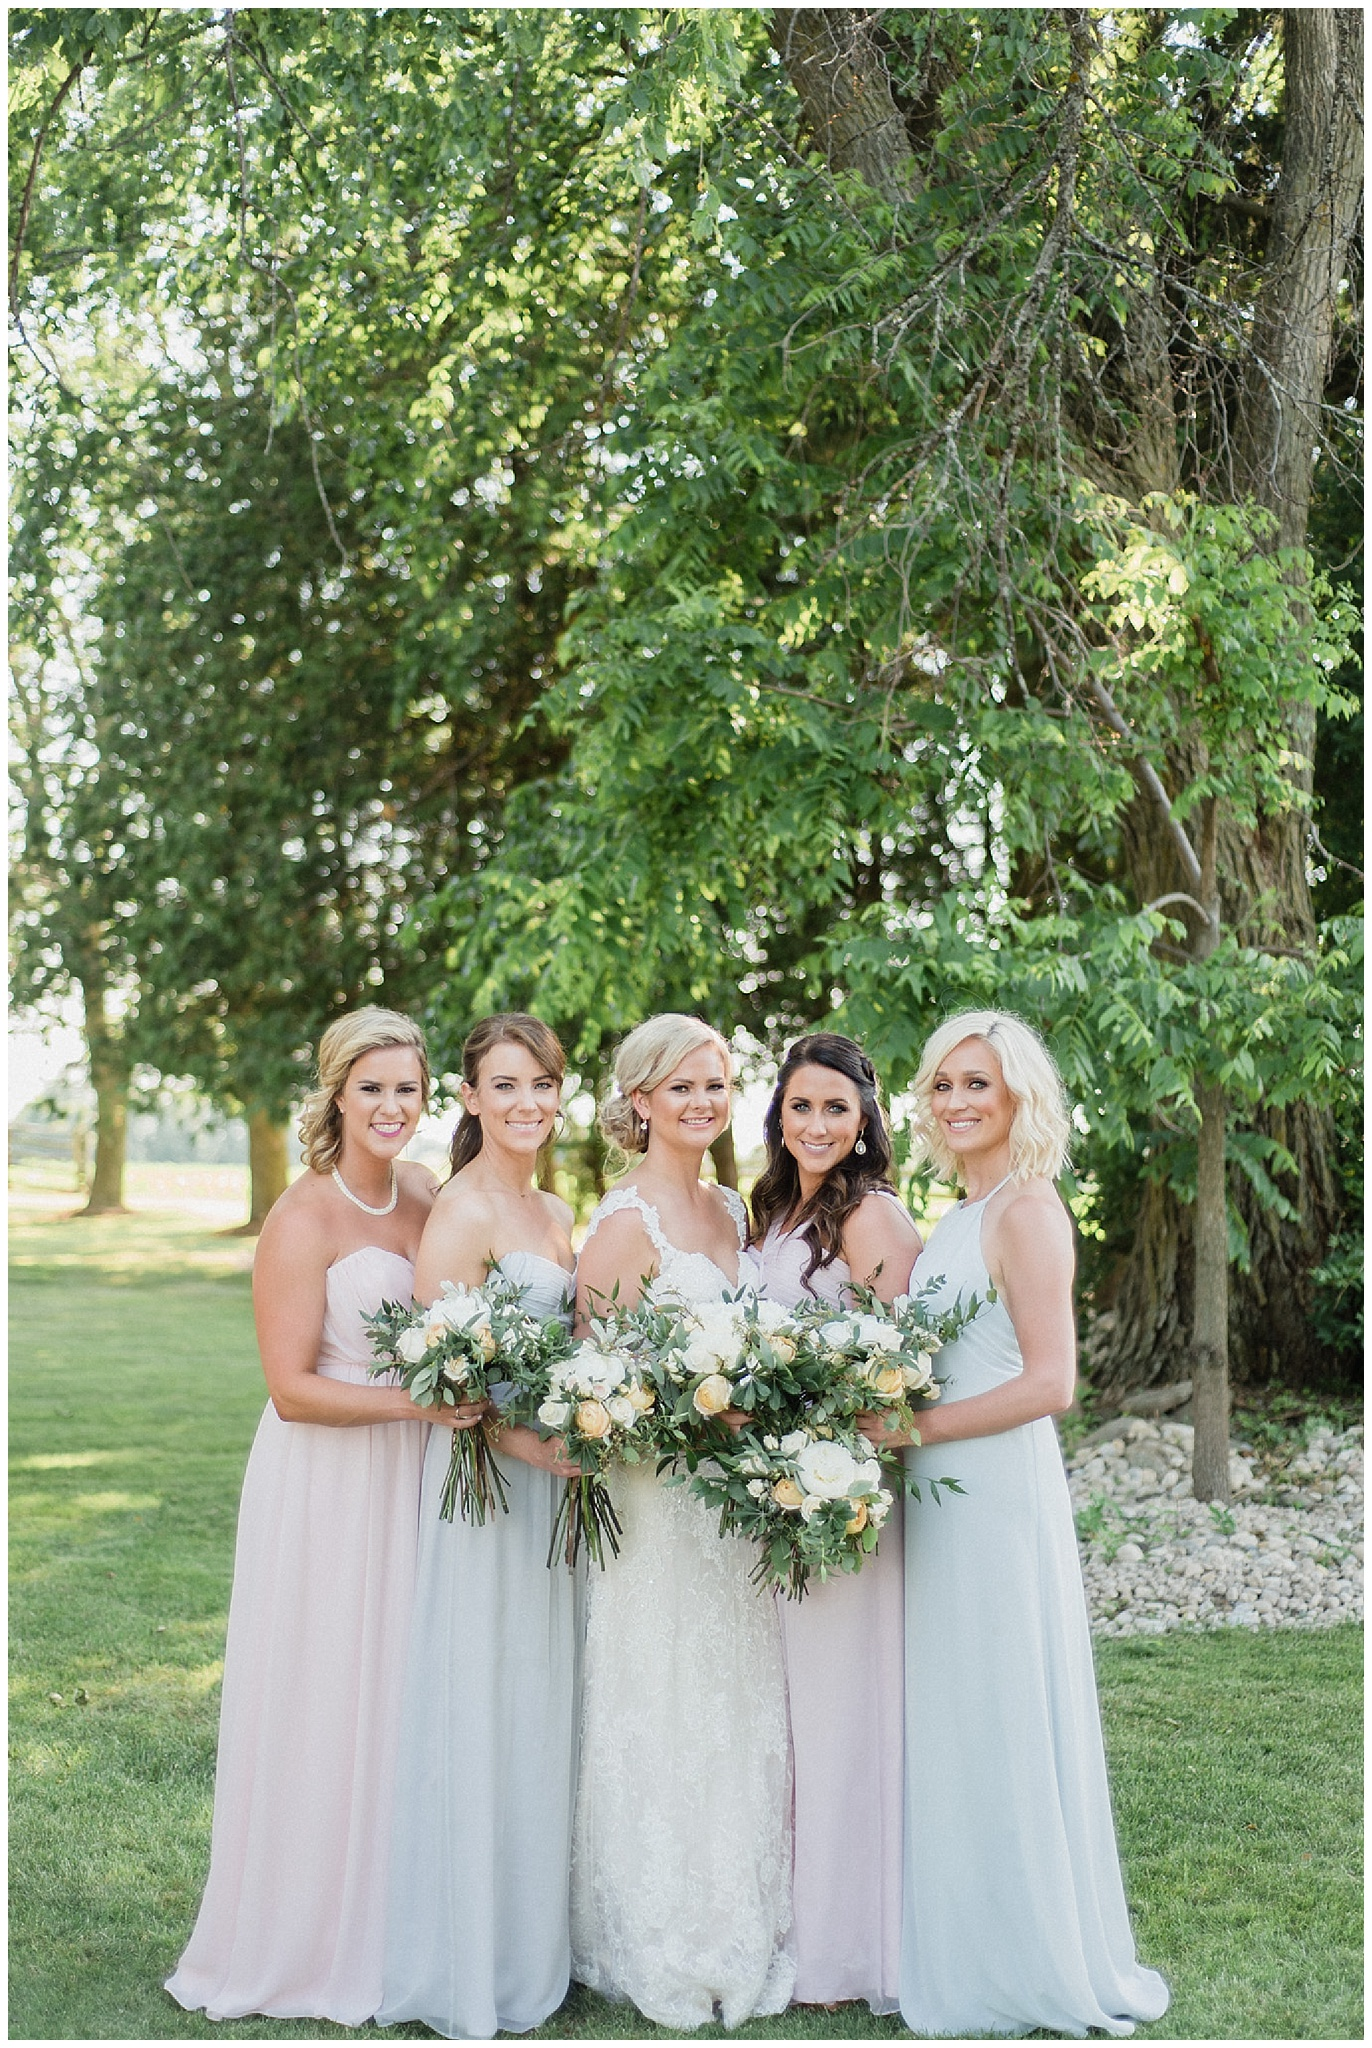 Mismatched pastel Amsale bridesmaids dresses | Tent wedding on family farm in Guelph, Ontario by Jenn Kavanagh Photography